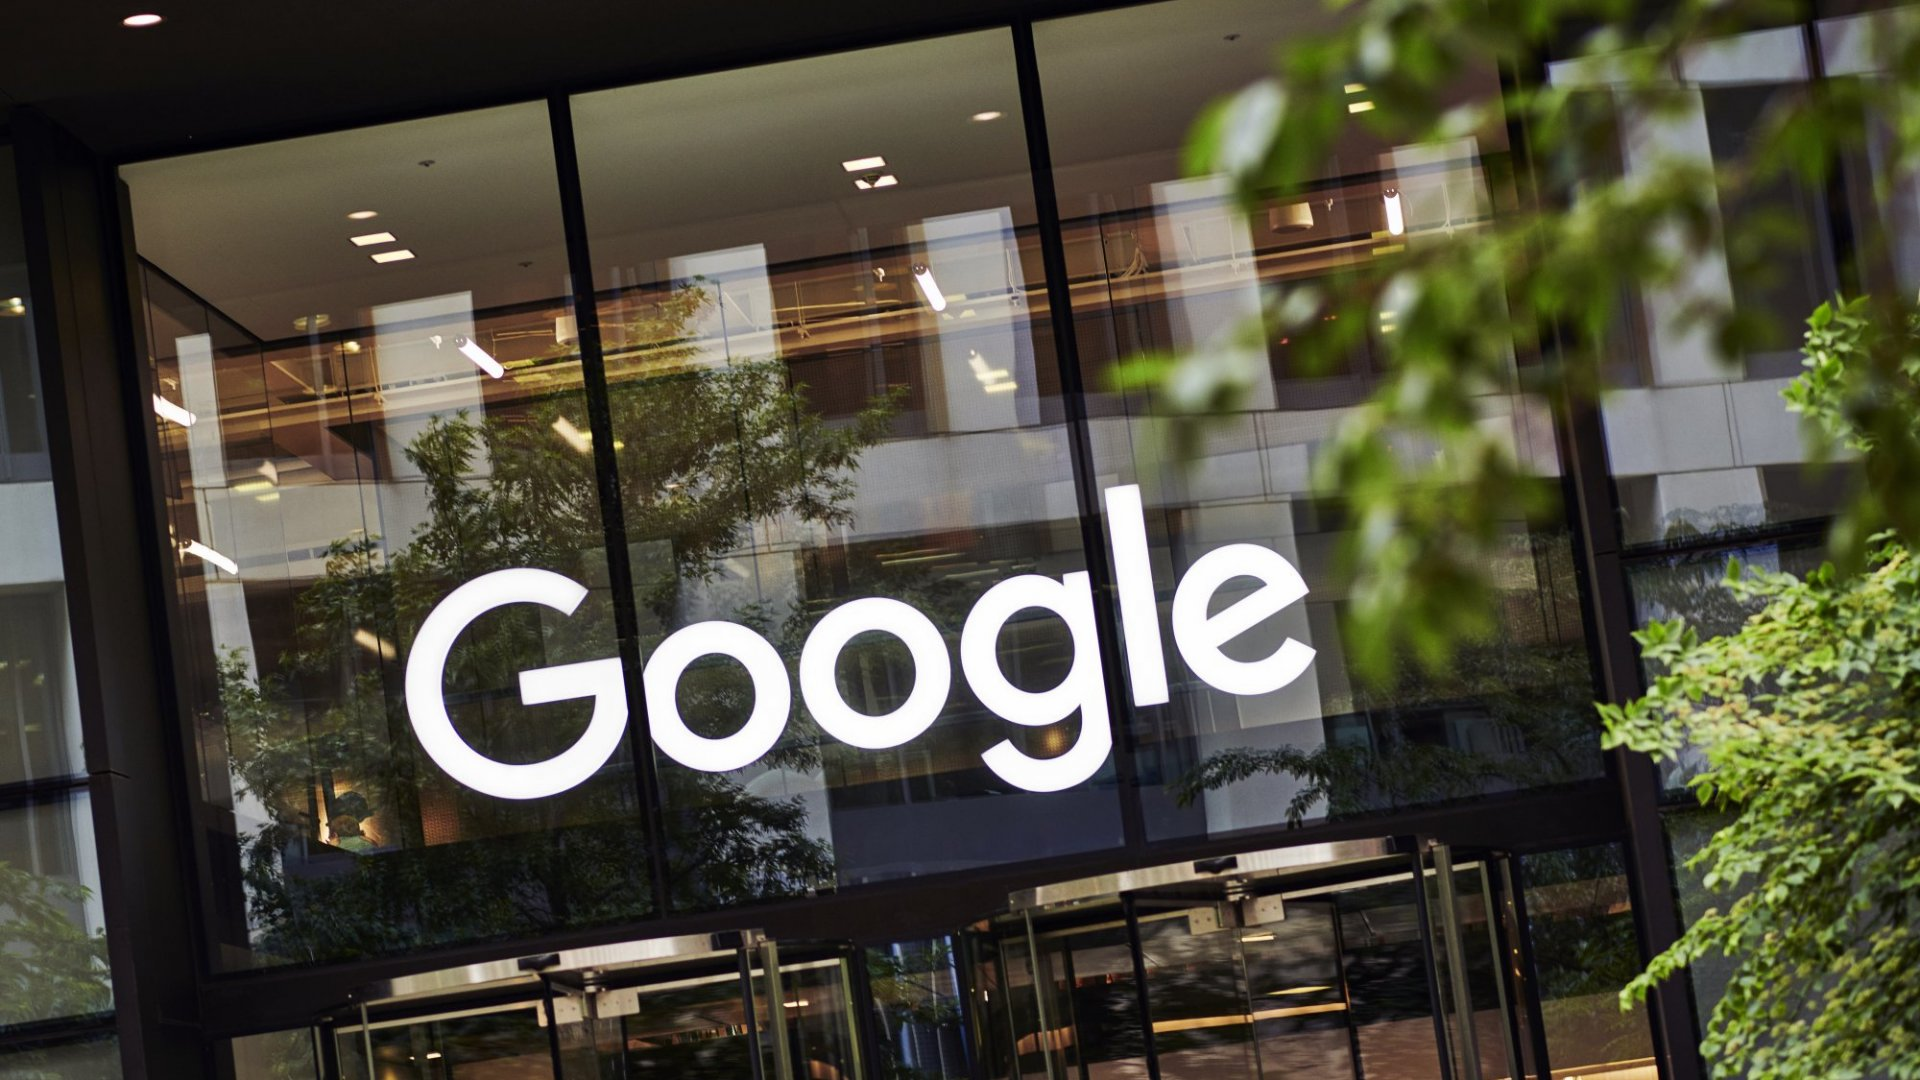 Google Has a Date With Shareholders Today and They Are Telling the Company It's Time for a Break Up